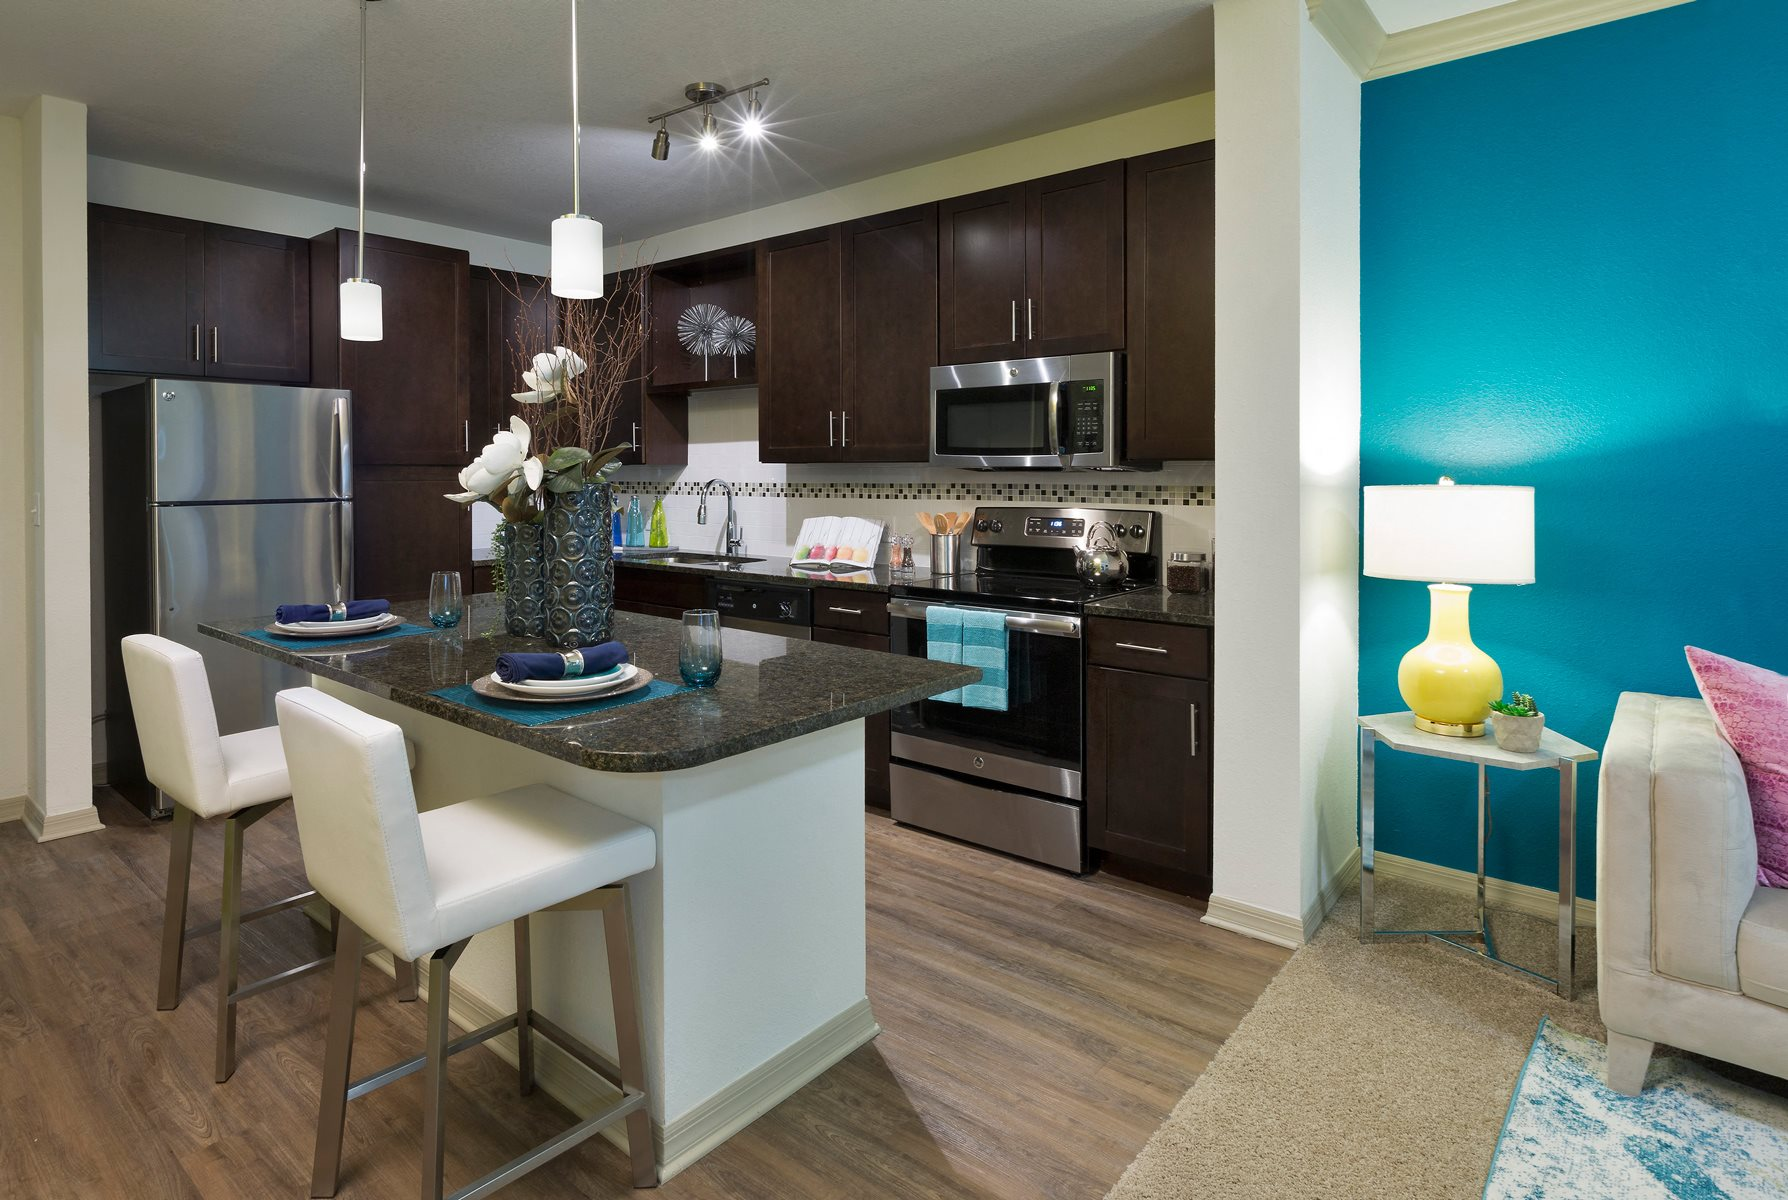 Gourmet Kitchen at Integra 360 Apartments in Winter Springs, FL